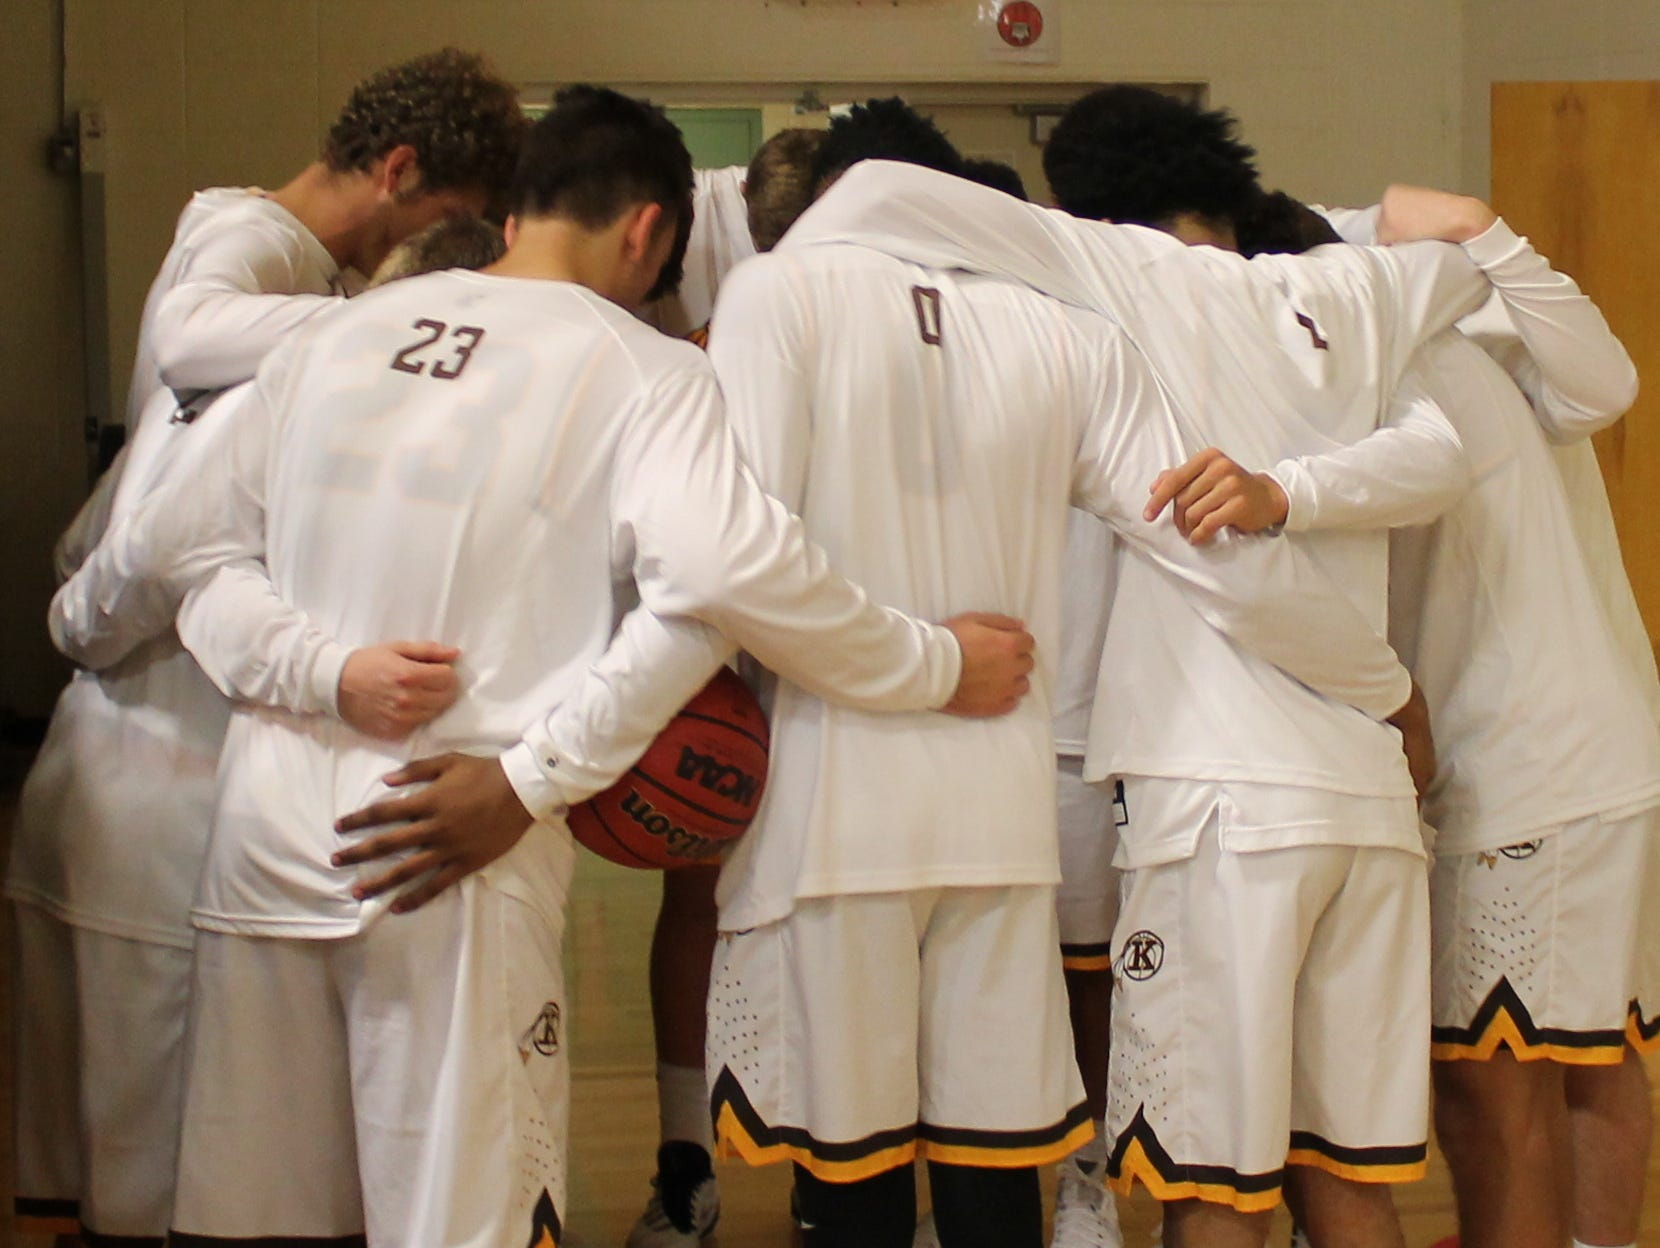 The Kickapoo High School boys basketball team takes a moment together before playing Glendale for the 2015 MBCA Hall of Fame Classic championship.